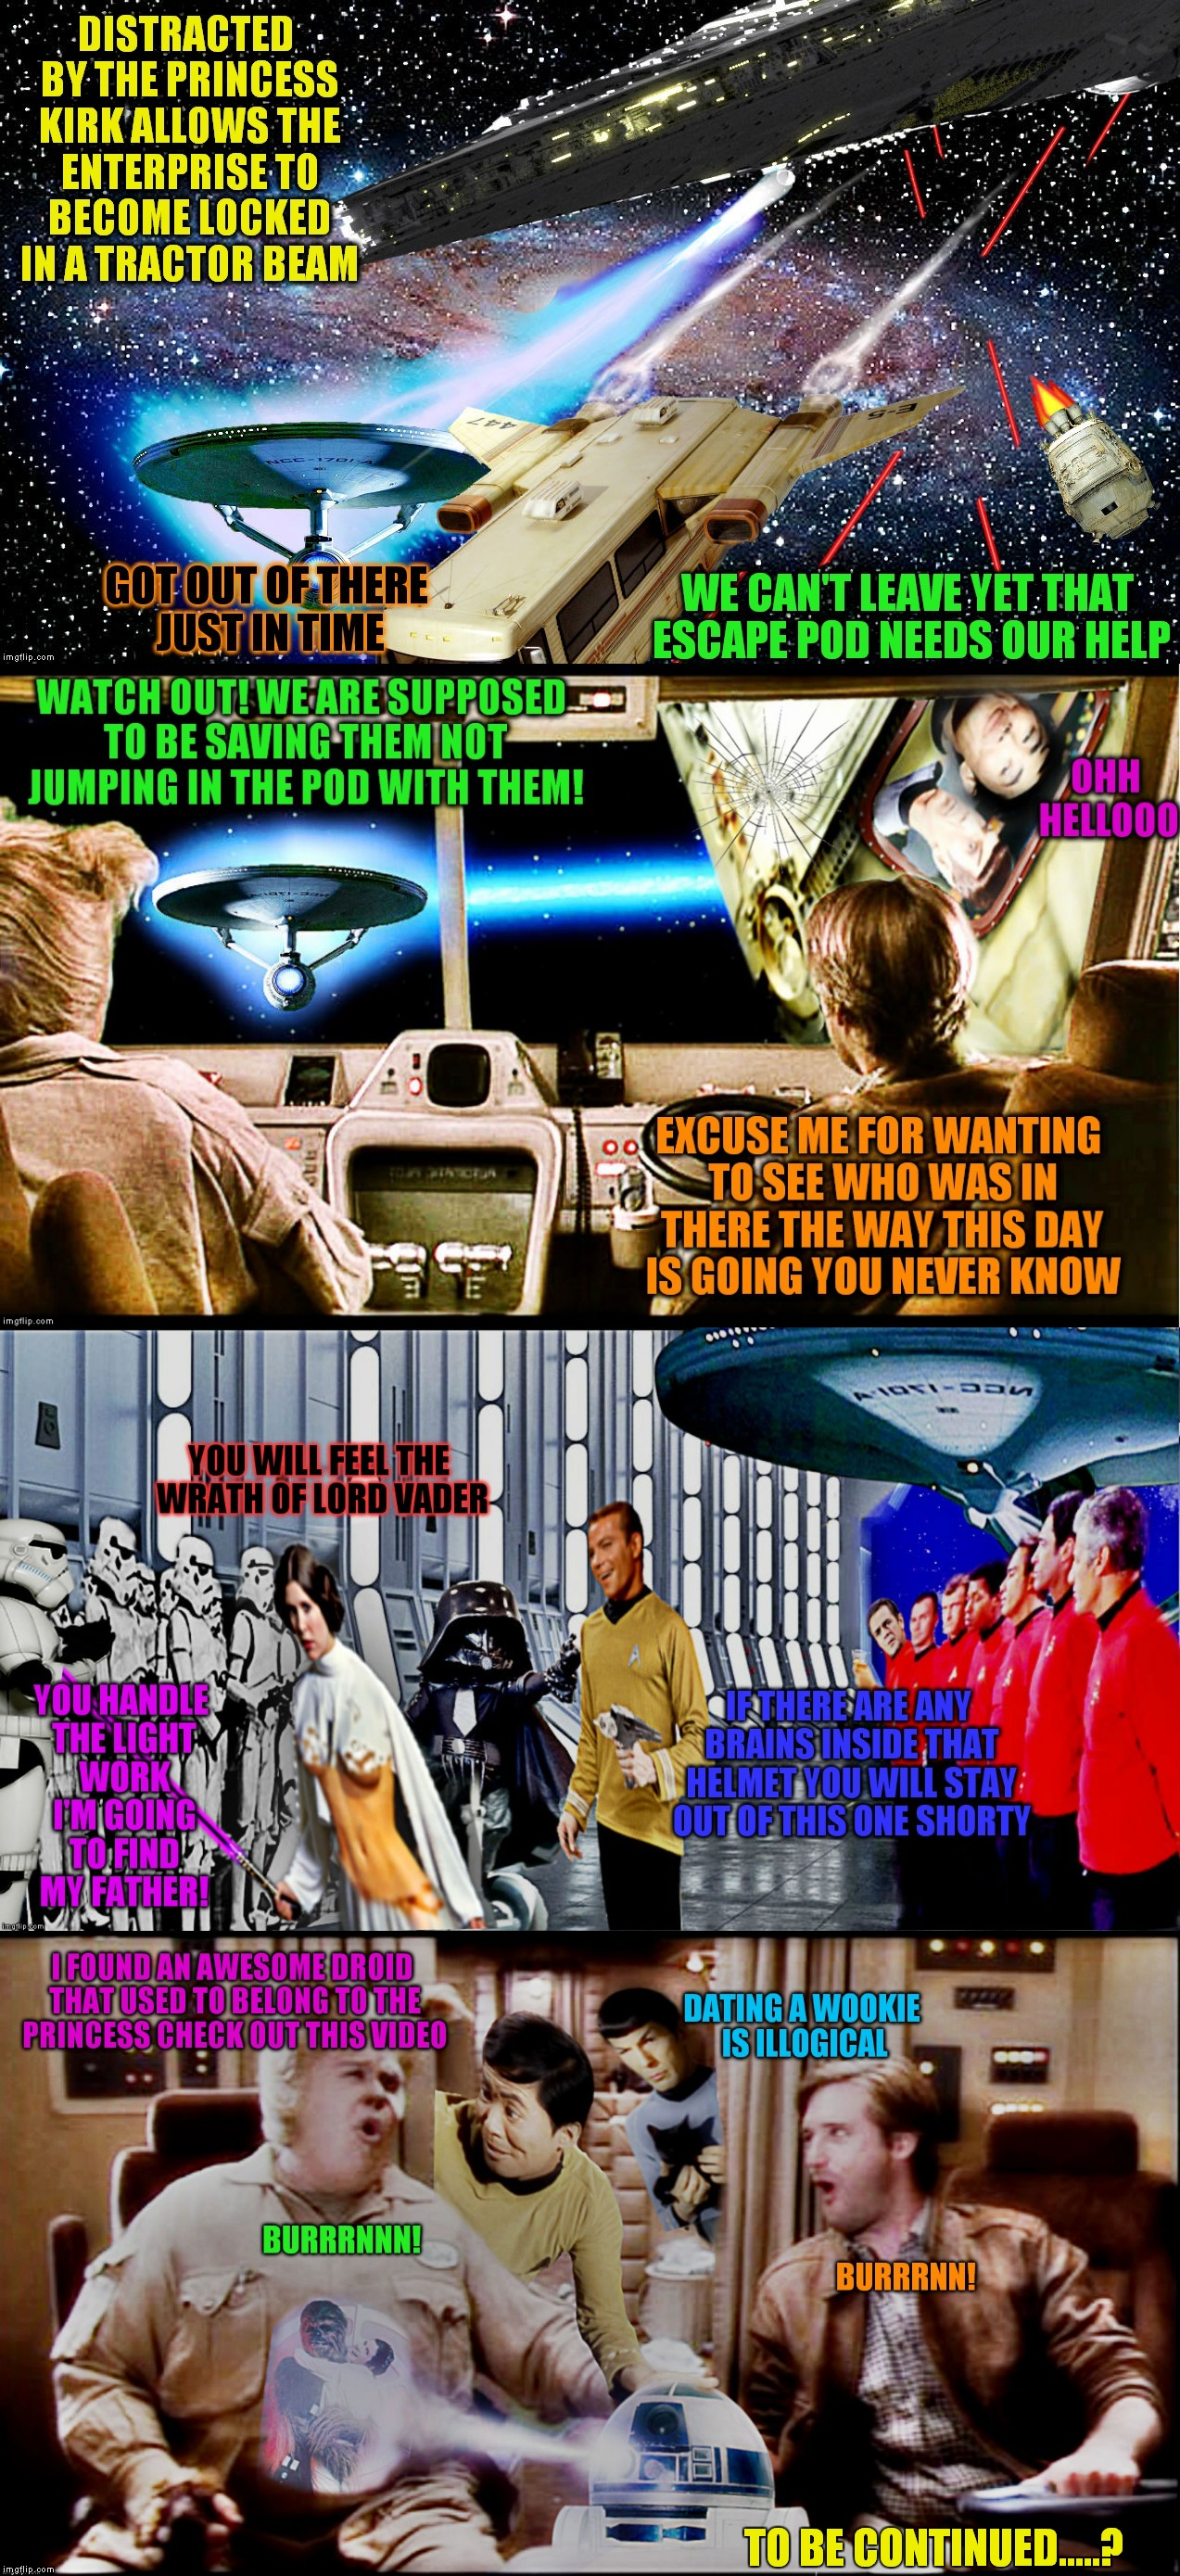 Will Spock and Sulu ever make it back to the Enterprise? Will Kirk be jealous of Leia's time with Chewy? Will this ever end?? | TO BE CONTINUED.....? | image tagged in trek wars,memestrocity,photoshop,spaceballs,jying | made w/ Imgflip meme maker